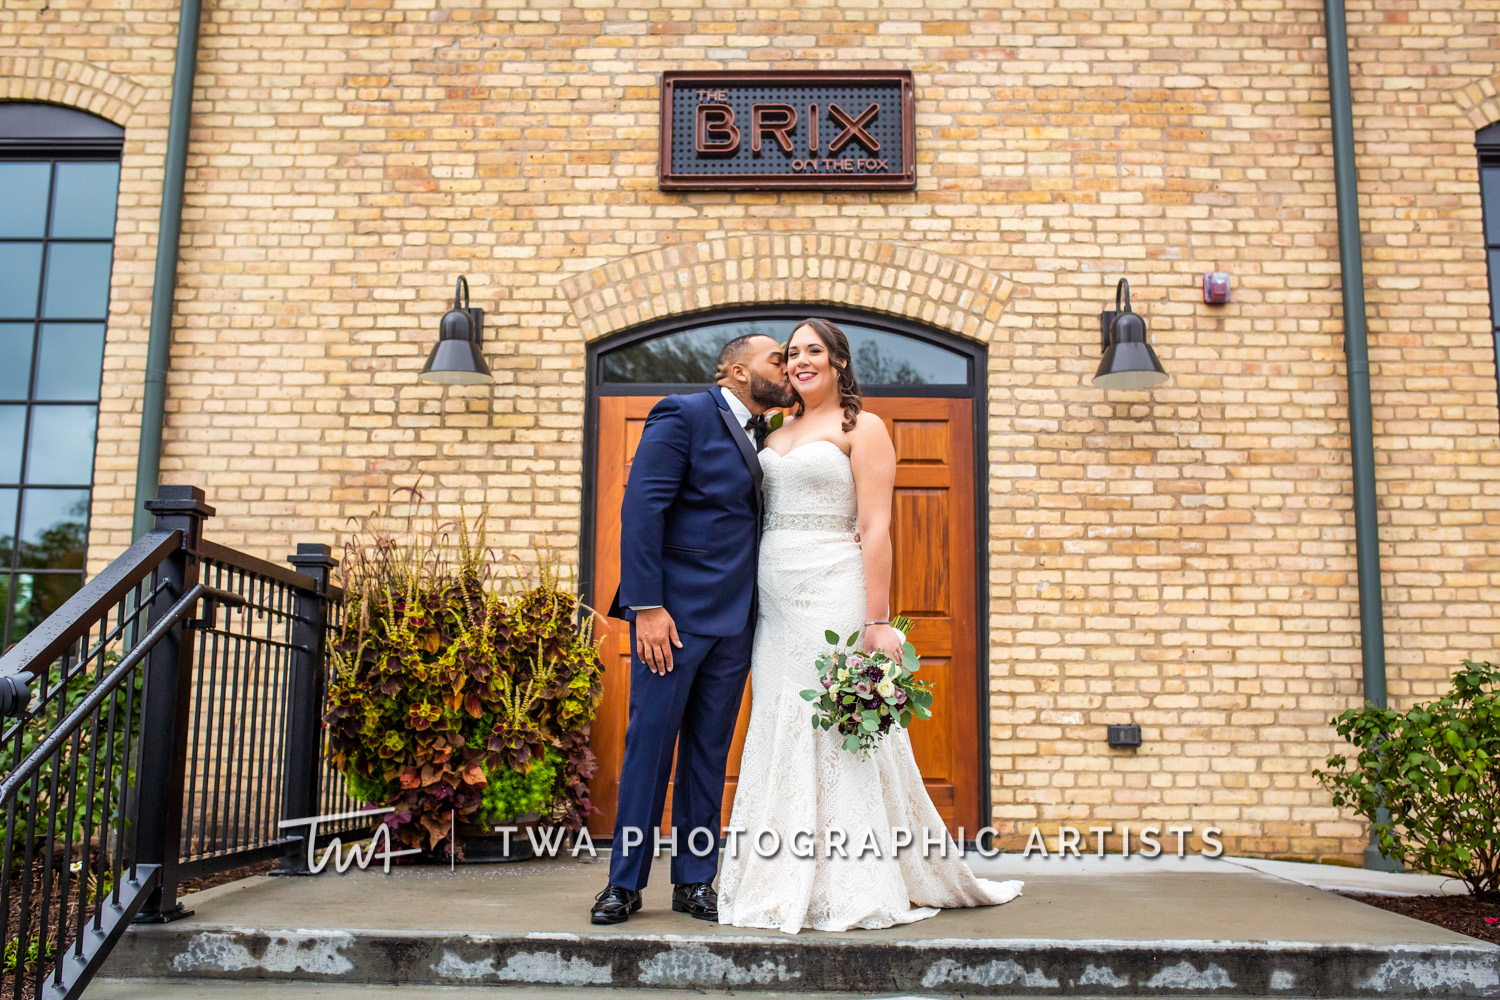 Weddings at The BRIX on the Fox | TWA Photographic Artists | Chicago Wedding Photographers